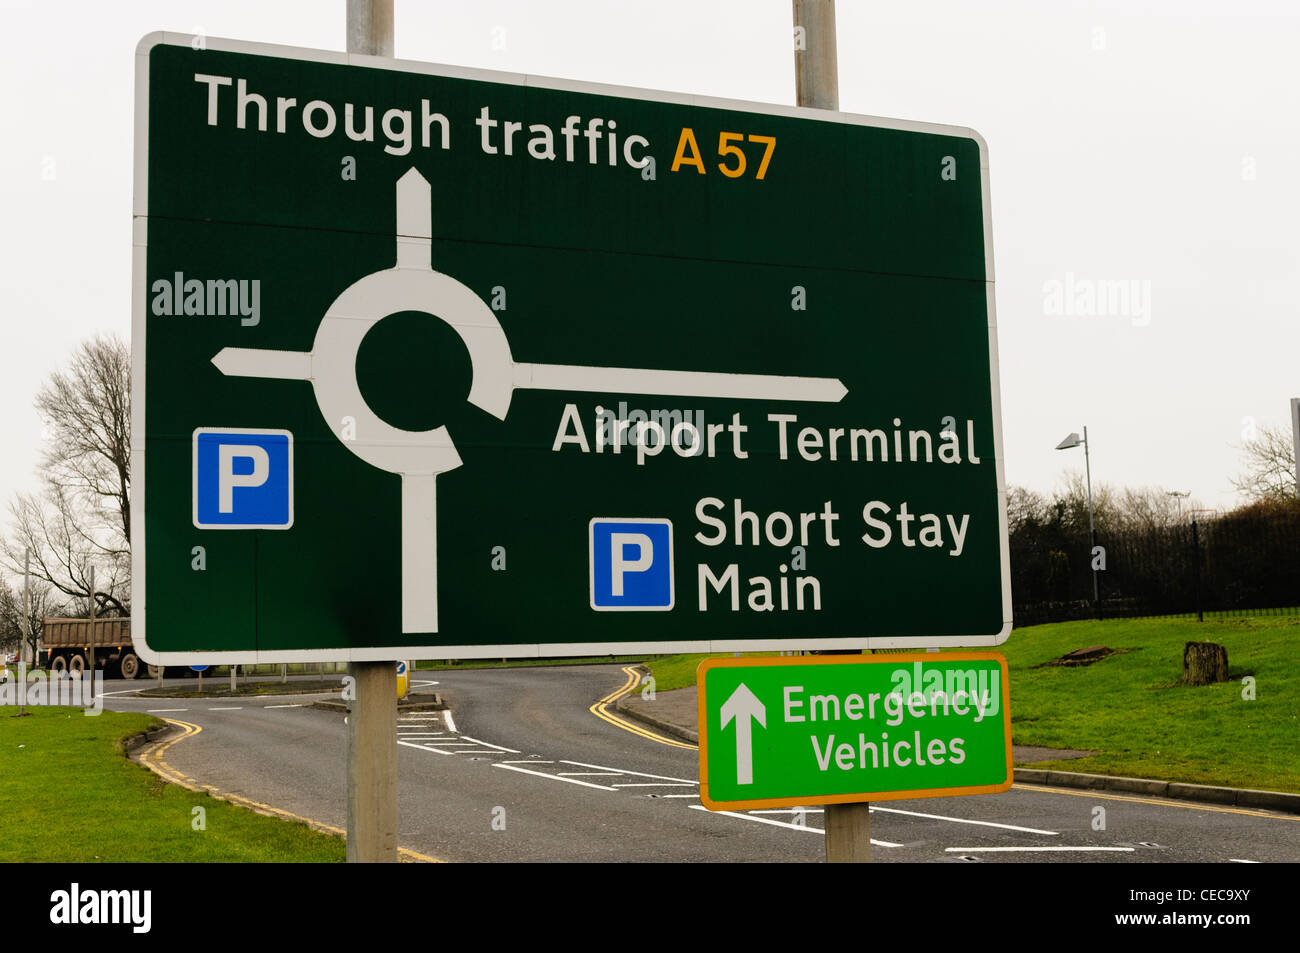 Road sign at an airport showing through traffic, terminal and parking - Stock Image